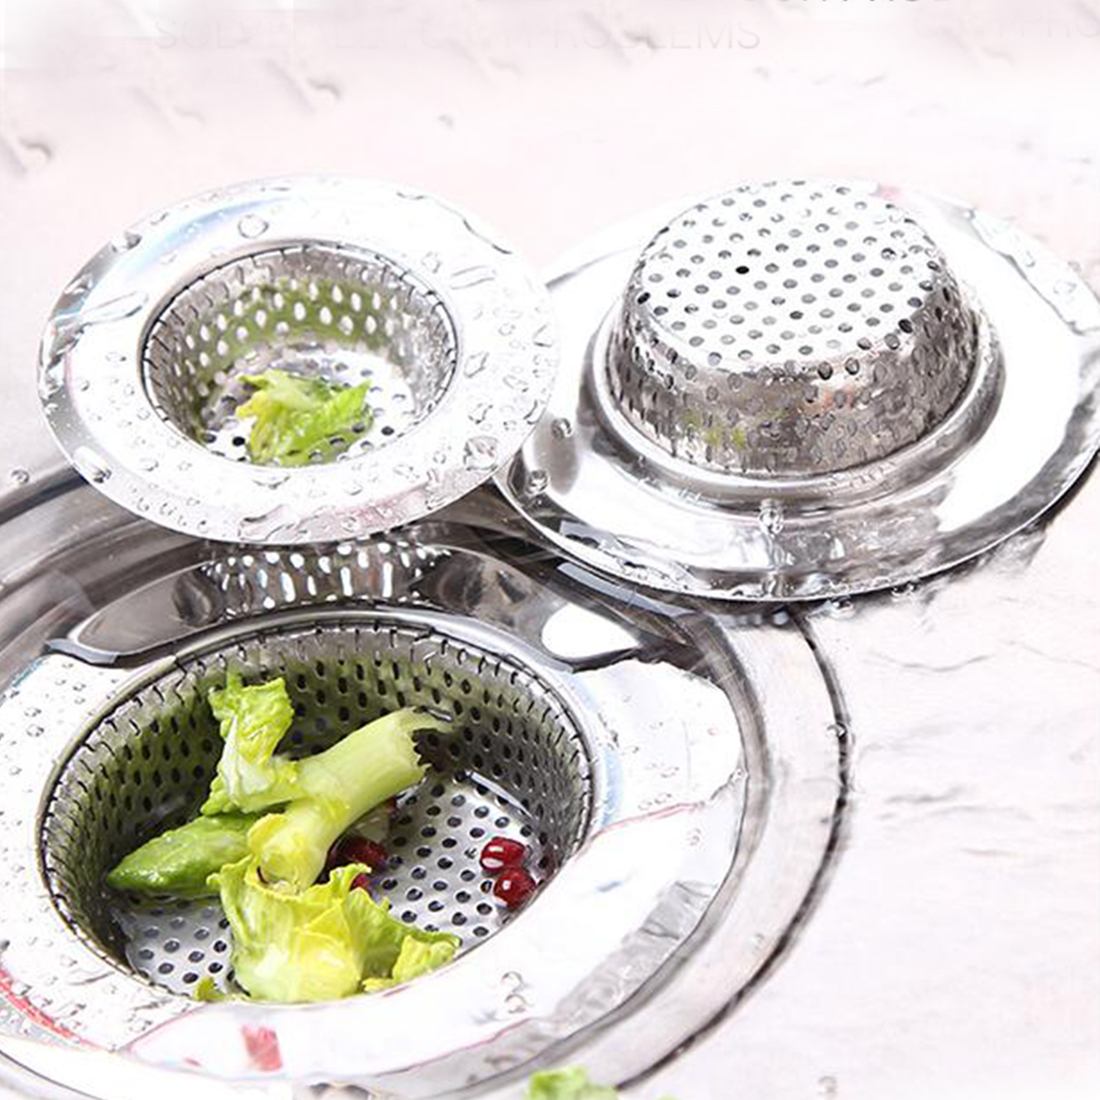 Stainless Steel Kitchen Sink Strainer Bathroom Toilet Accessories ...